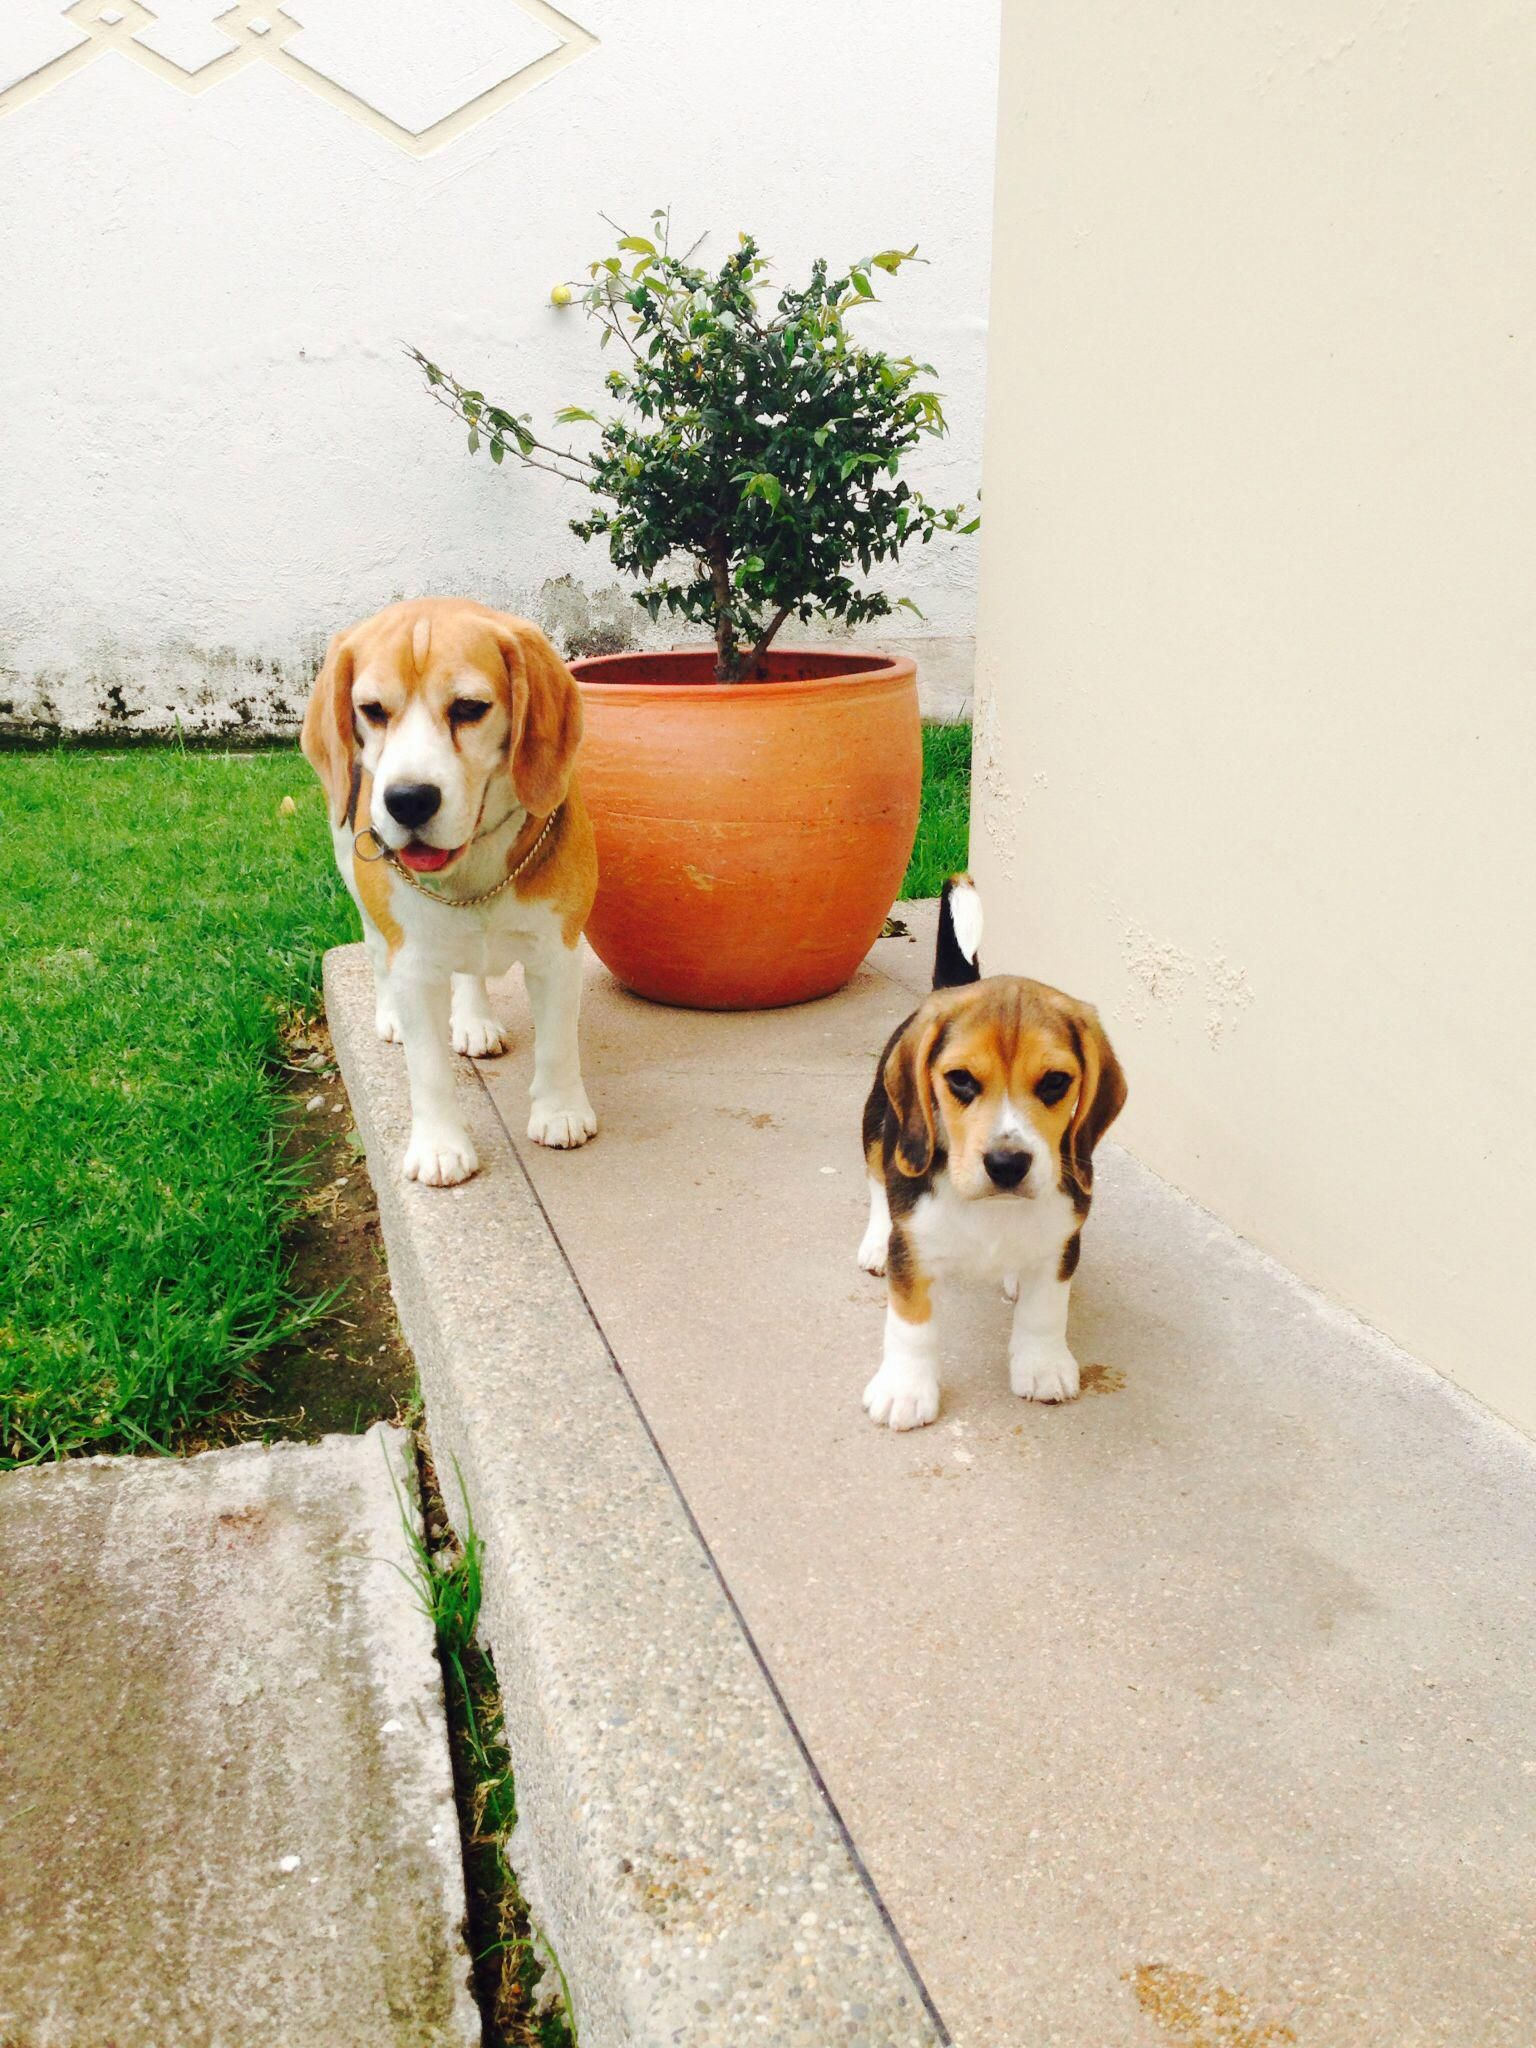 Beagles They Are So Cute Beagles They Are So Cute Training